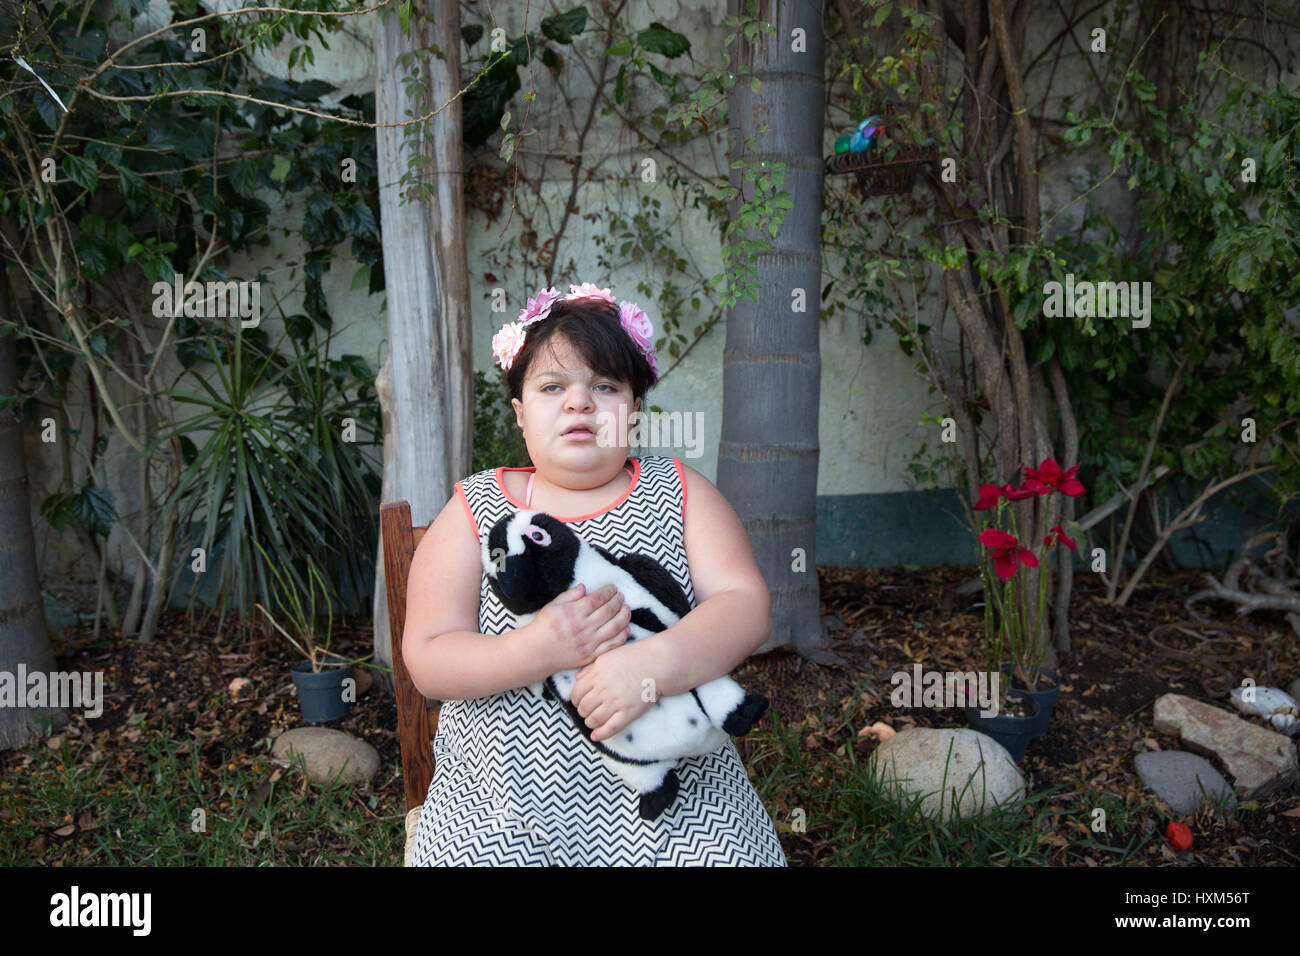 Ana Ximena Navarro is pictured at her home in Guadalajara, Mexico on February 22, 2017. Ximena was diagnosed as - Stock Image